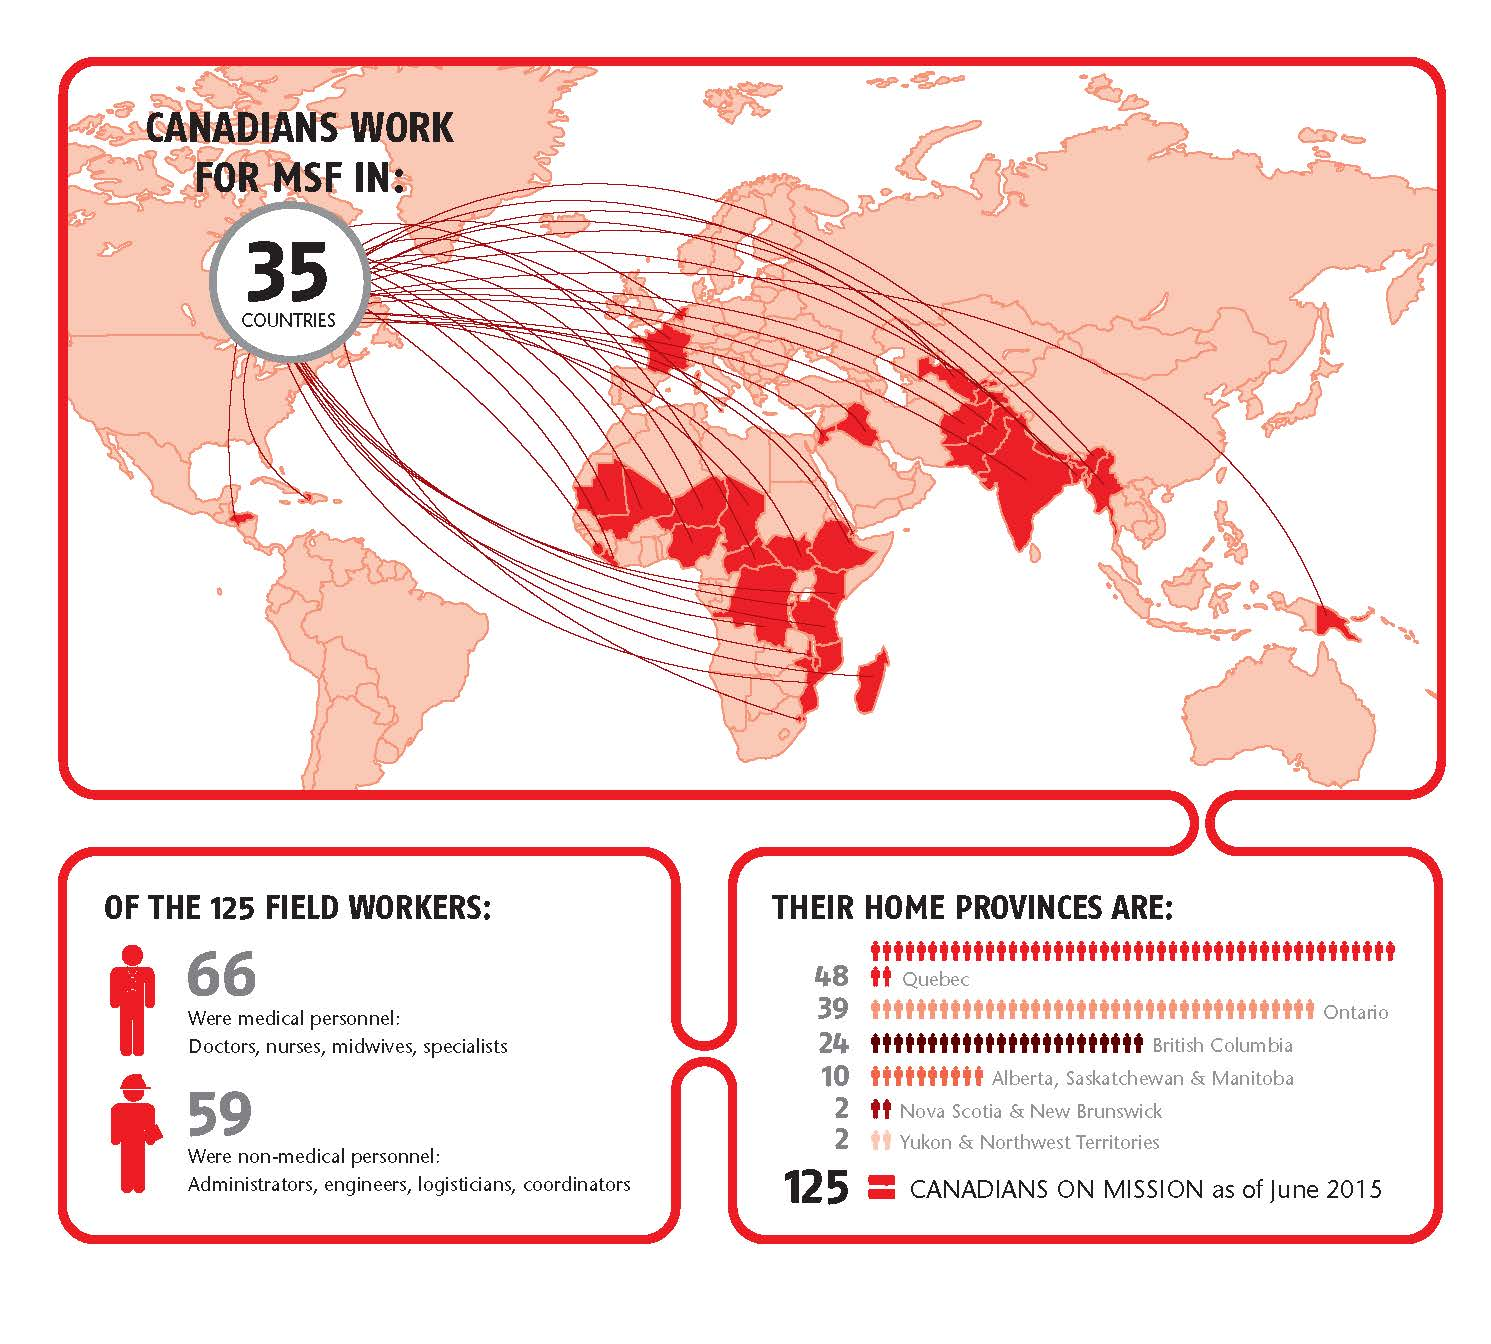 Where Canadians Work In The Field With MSF